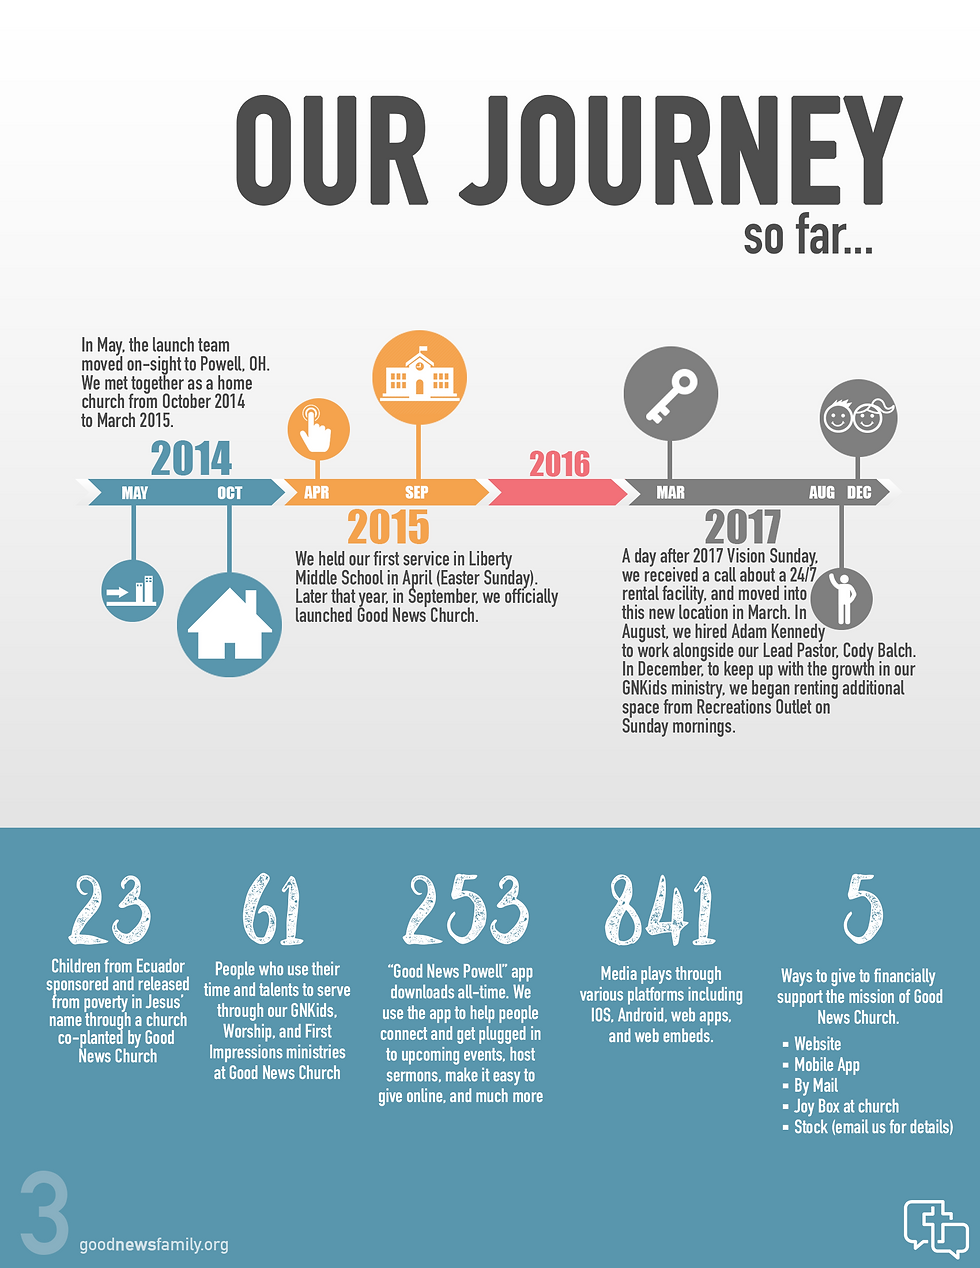 2017 annual report, good news church, powell, ohio, our journey, mobile app, vision sunday